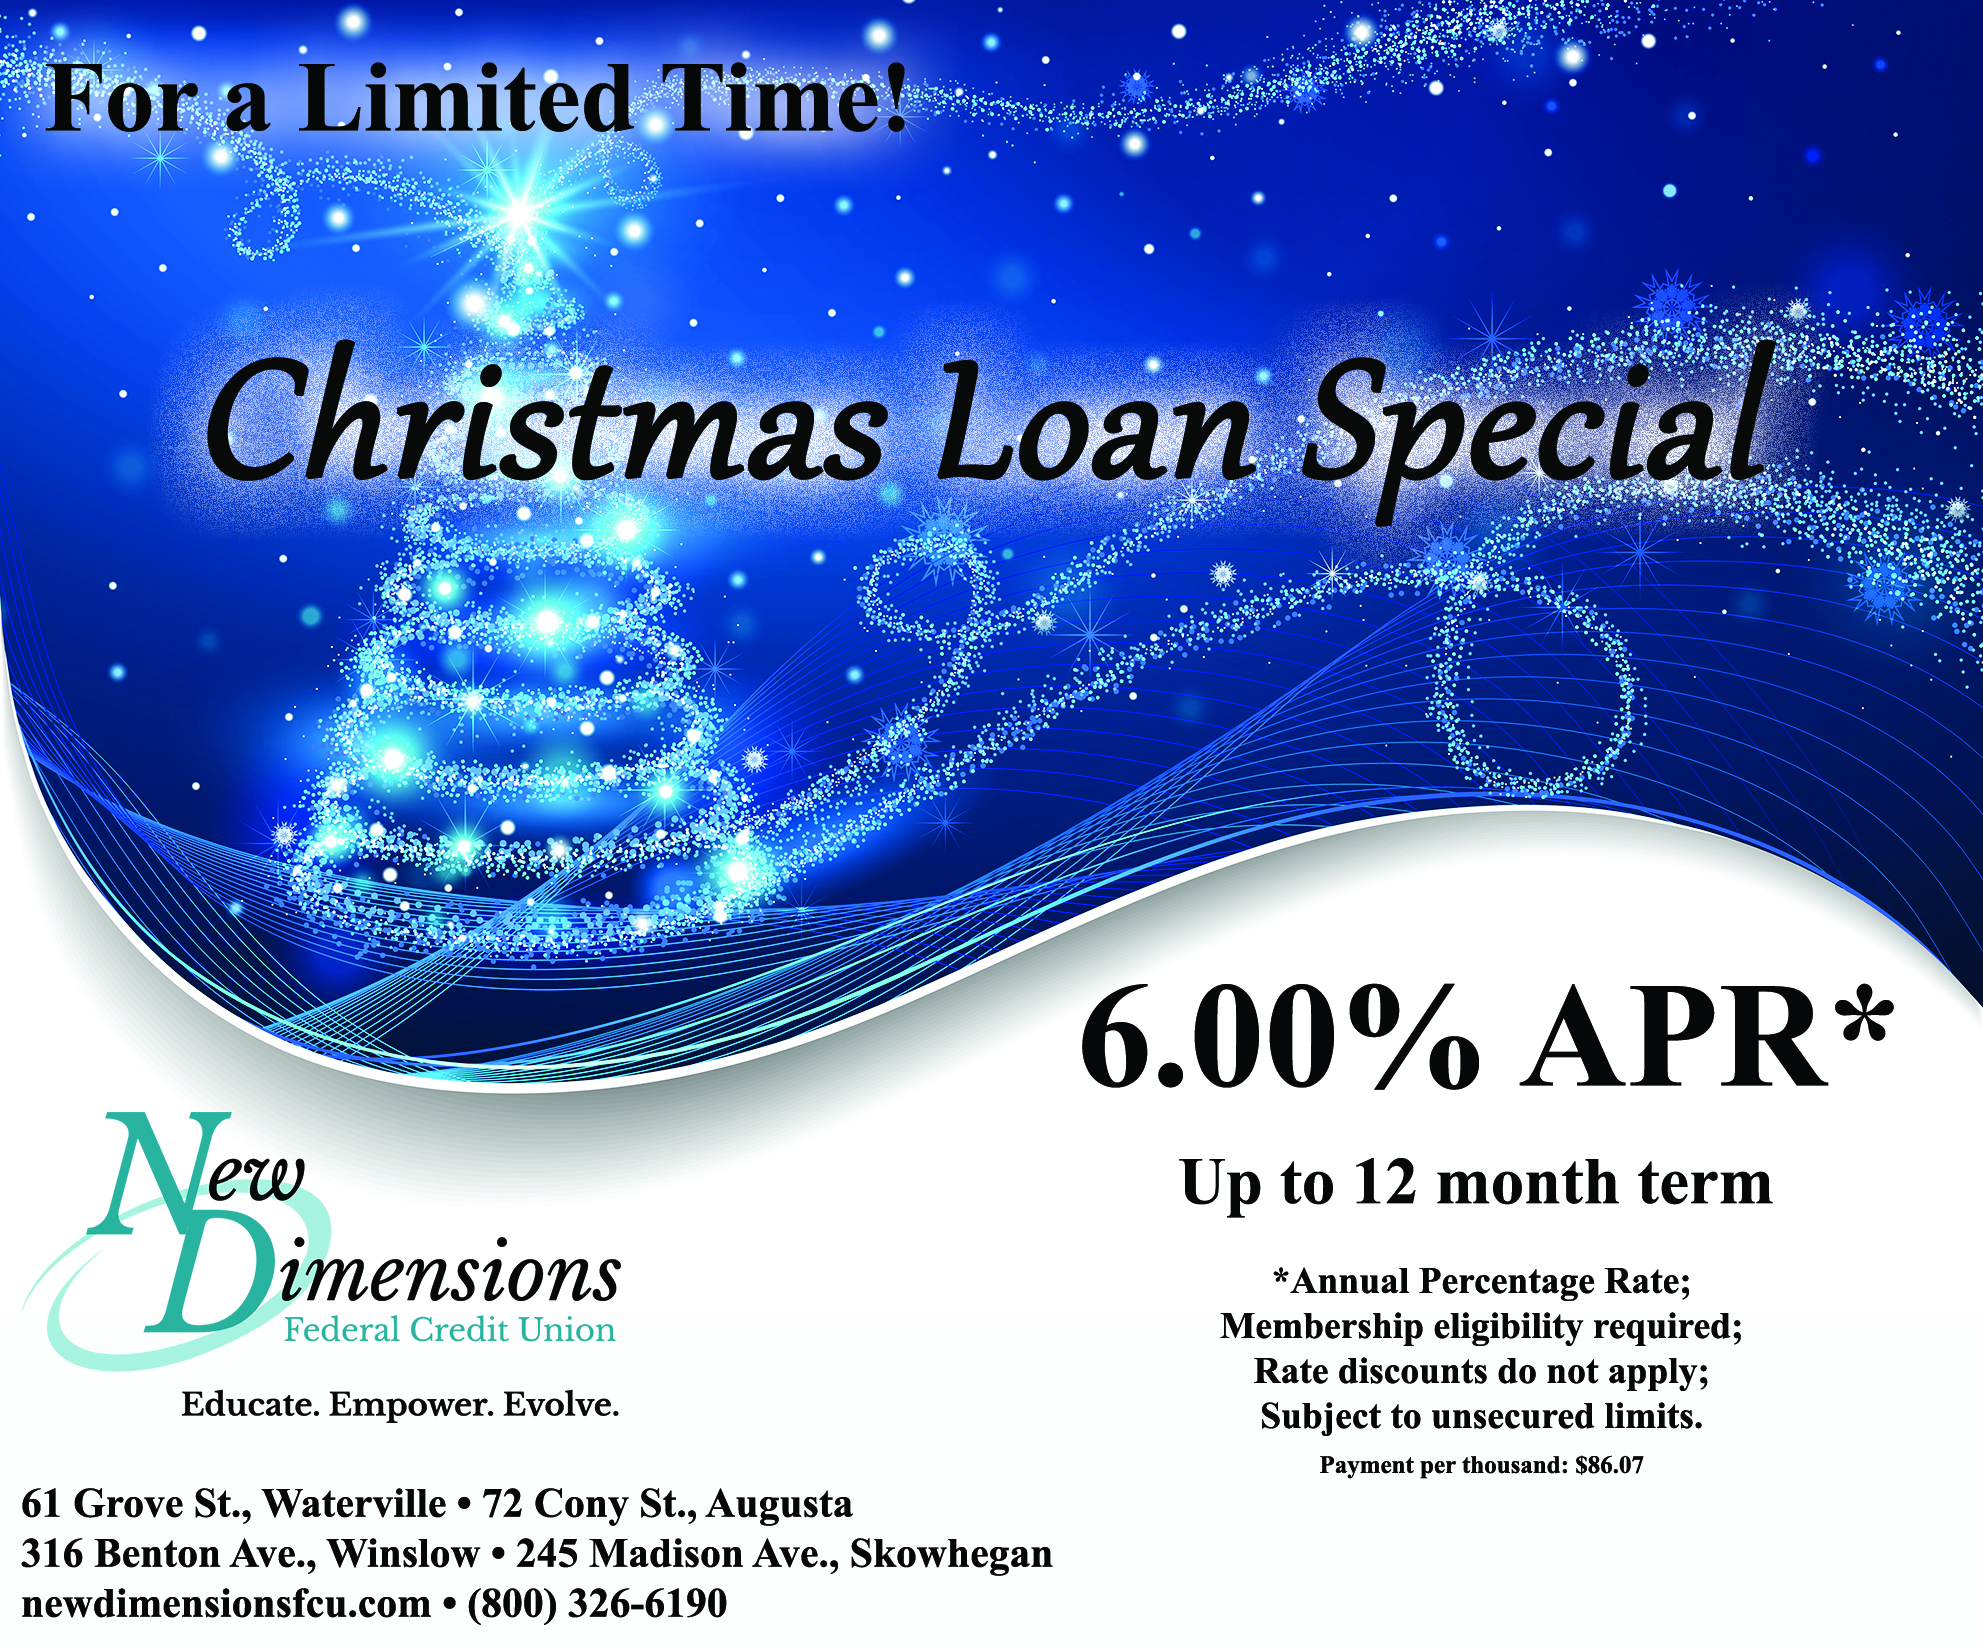 at new dimensions fcu our personal loans have extremely competitive rates we have terms to fit your budget and loan amounts to fit your needs - Christmas Loans No Credit Check